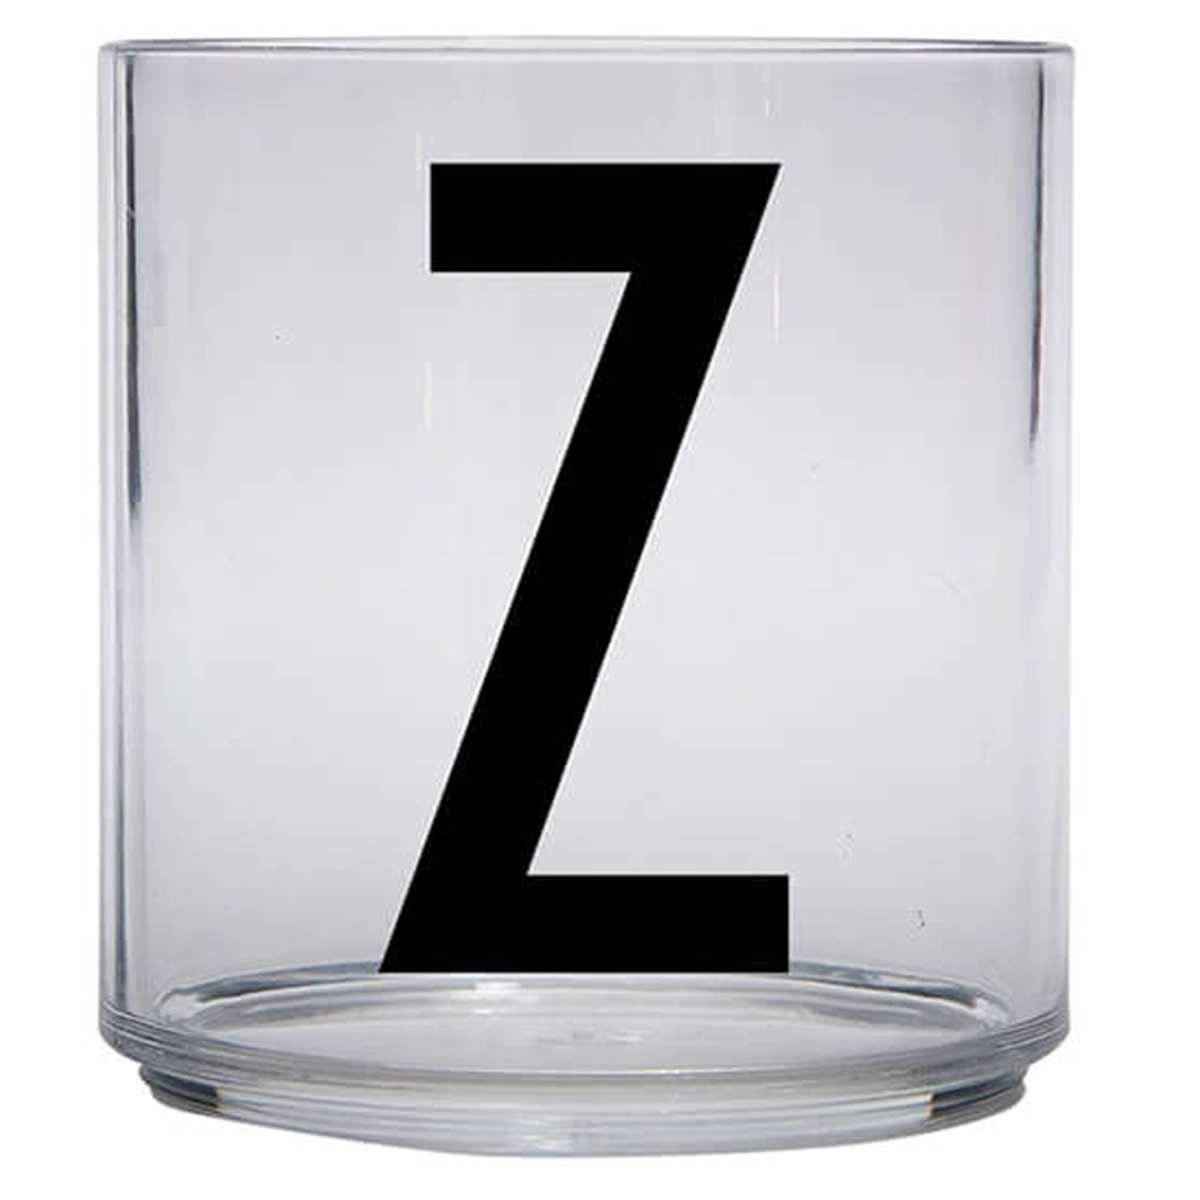 Tasse & Verre Verre Transparent Z - 220 ml Verre Transparent Z - 220 ml